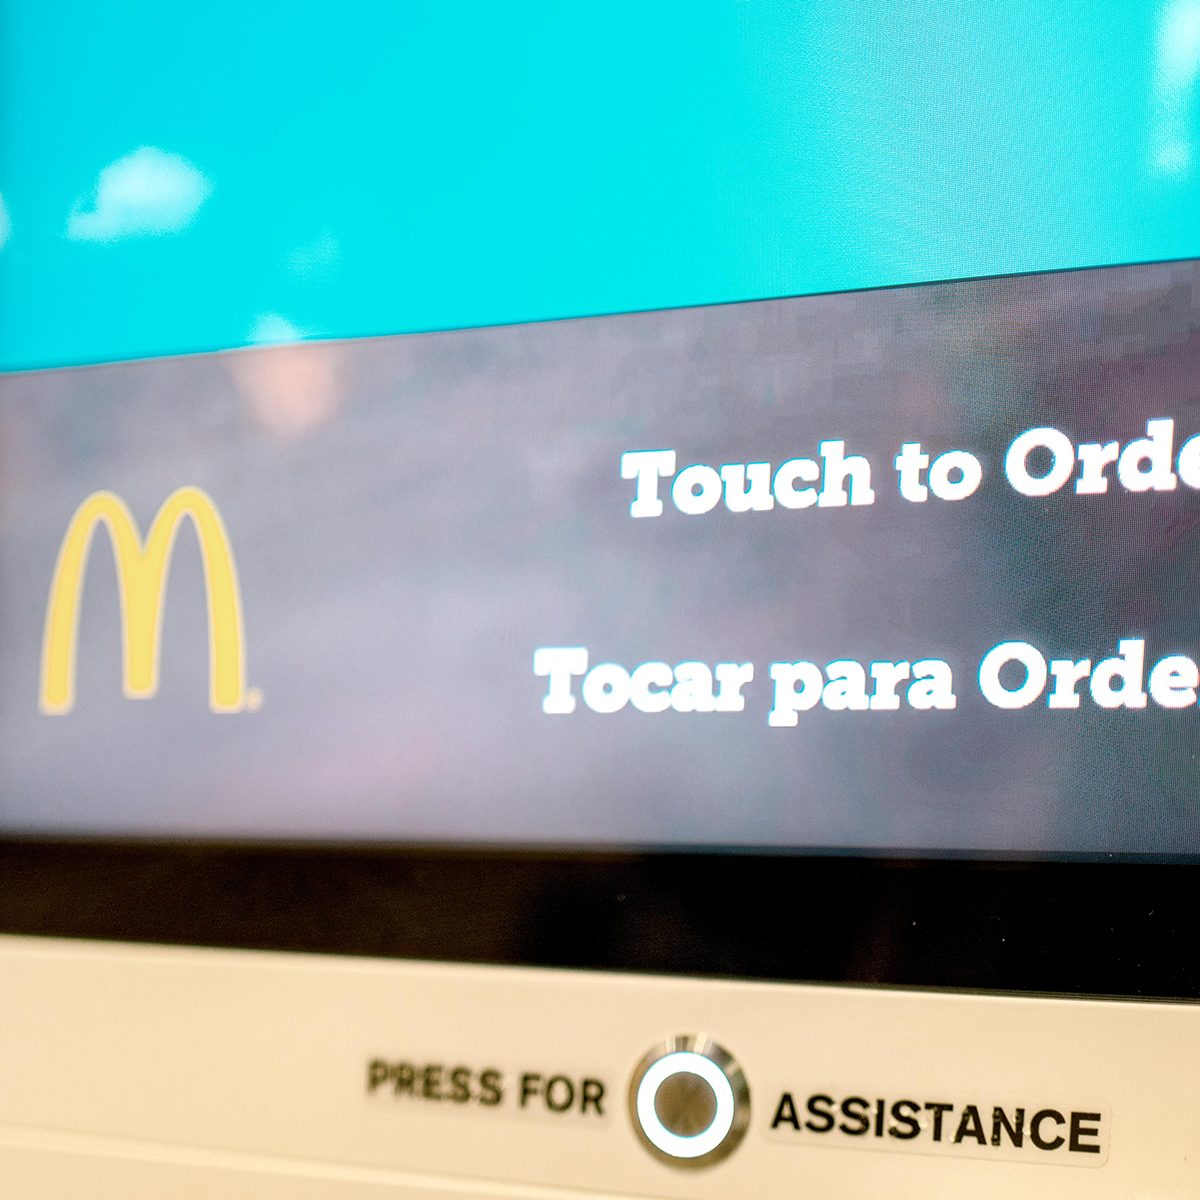 McDonald's Touch-screens